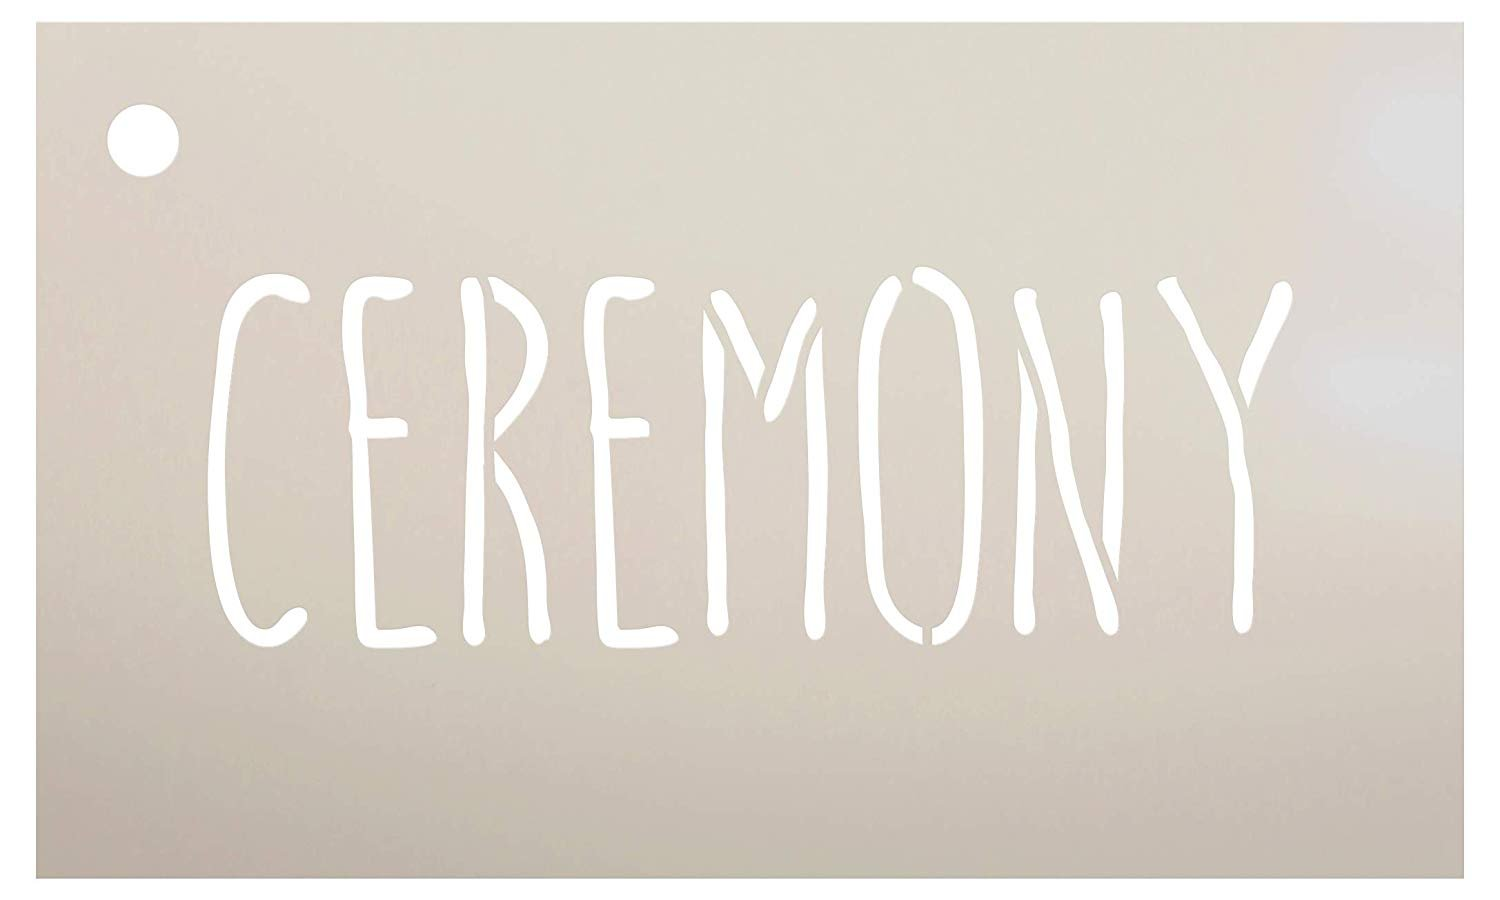 Wedding Sign Word - Ceremony - Skinny Hand Stencil by StudioR12 | Reusable Mylar Template | Use to Paint Wood Signs - Pallets - Pillows - DIY Wedding Decor - Select Size